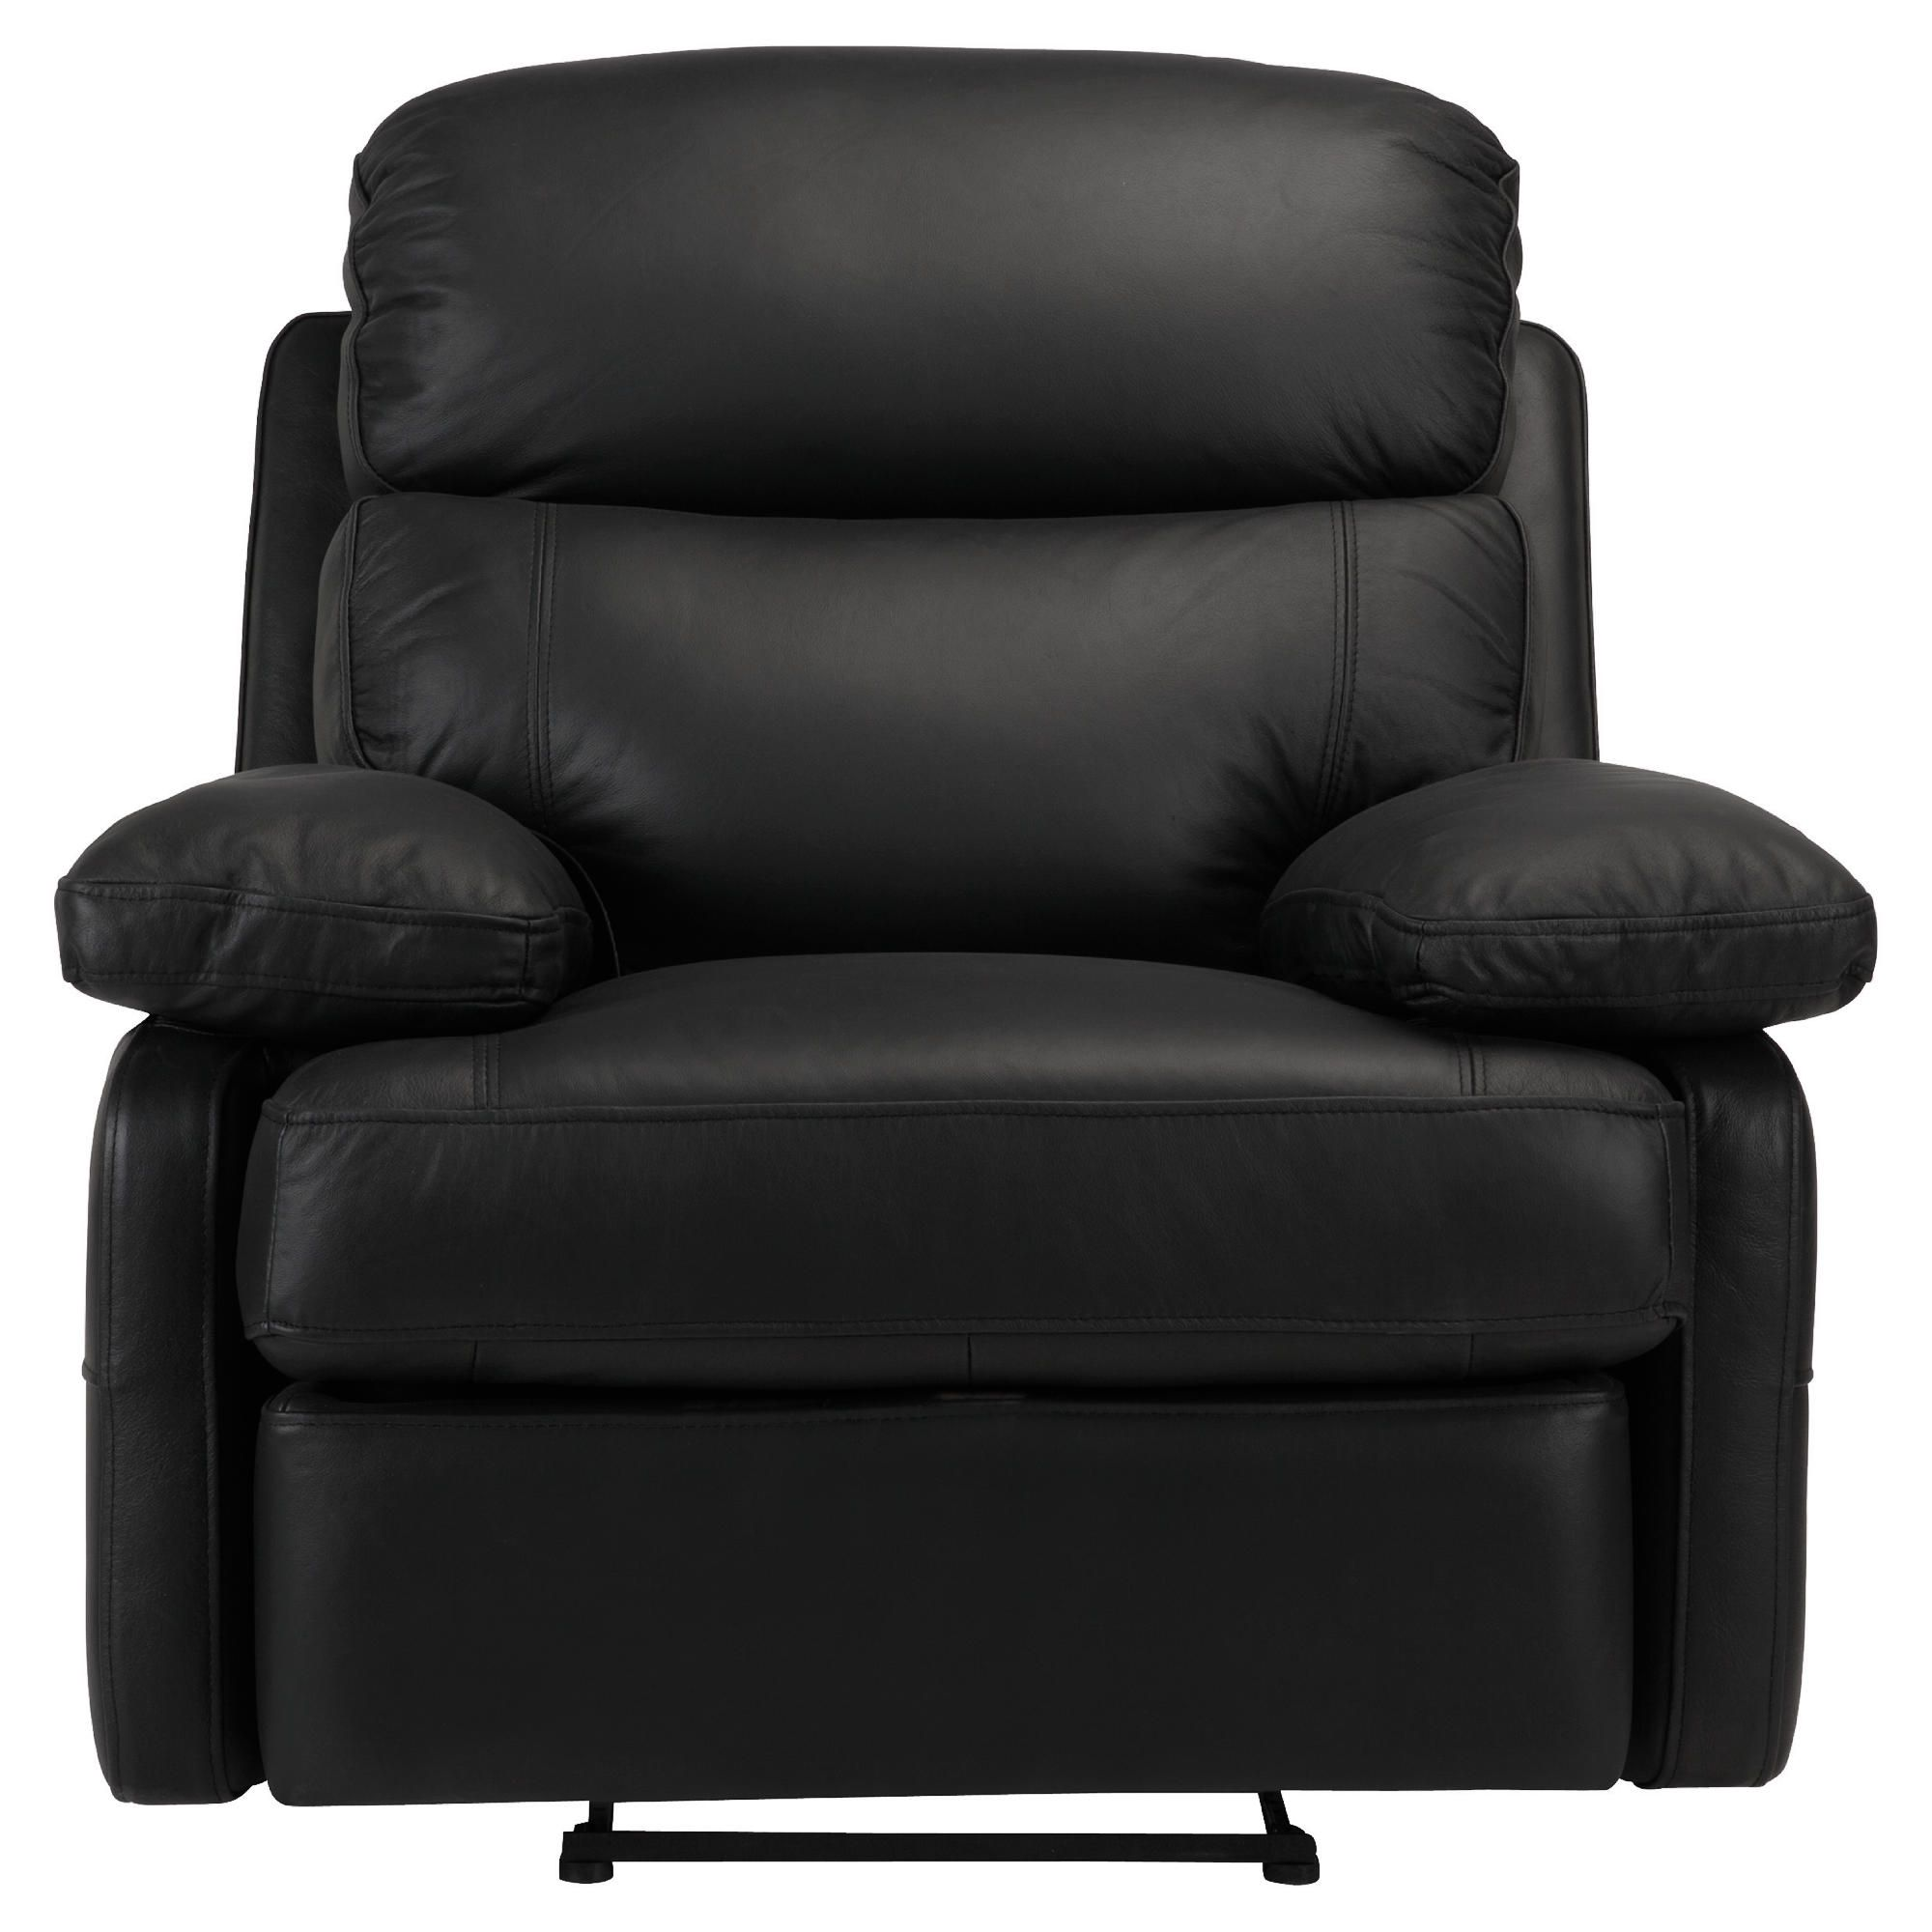 Cordova Leather Recliner Chair Black at Tesco Direct